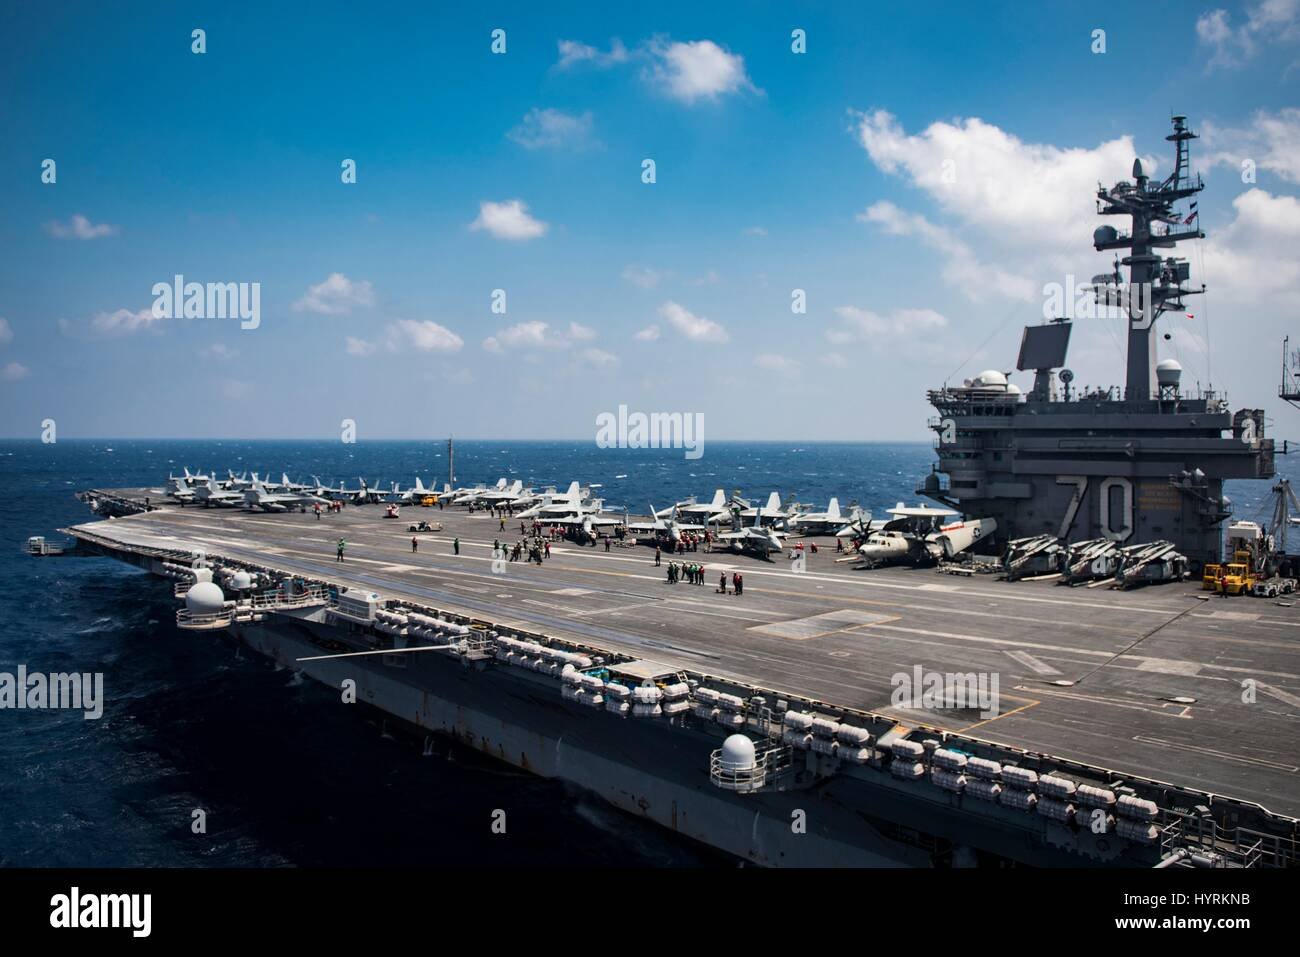 The USN Nimitz-class aircraft carrier USS Carl Vinson steams underway March 2, 2017 in the South China Sea. - Stock Image